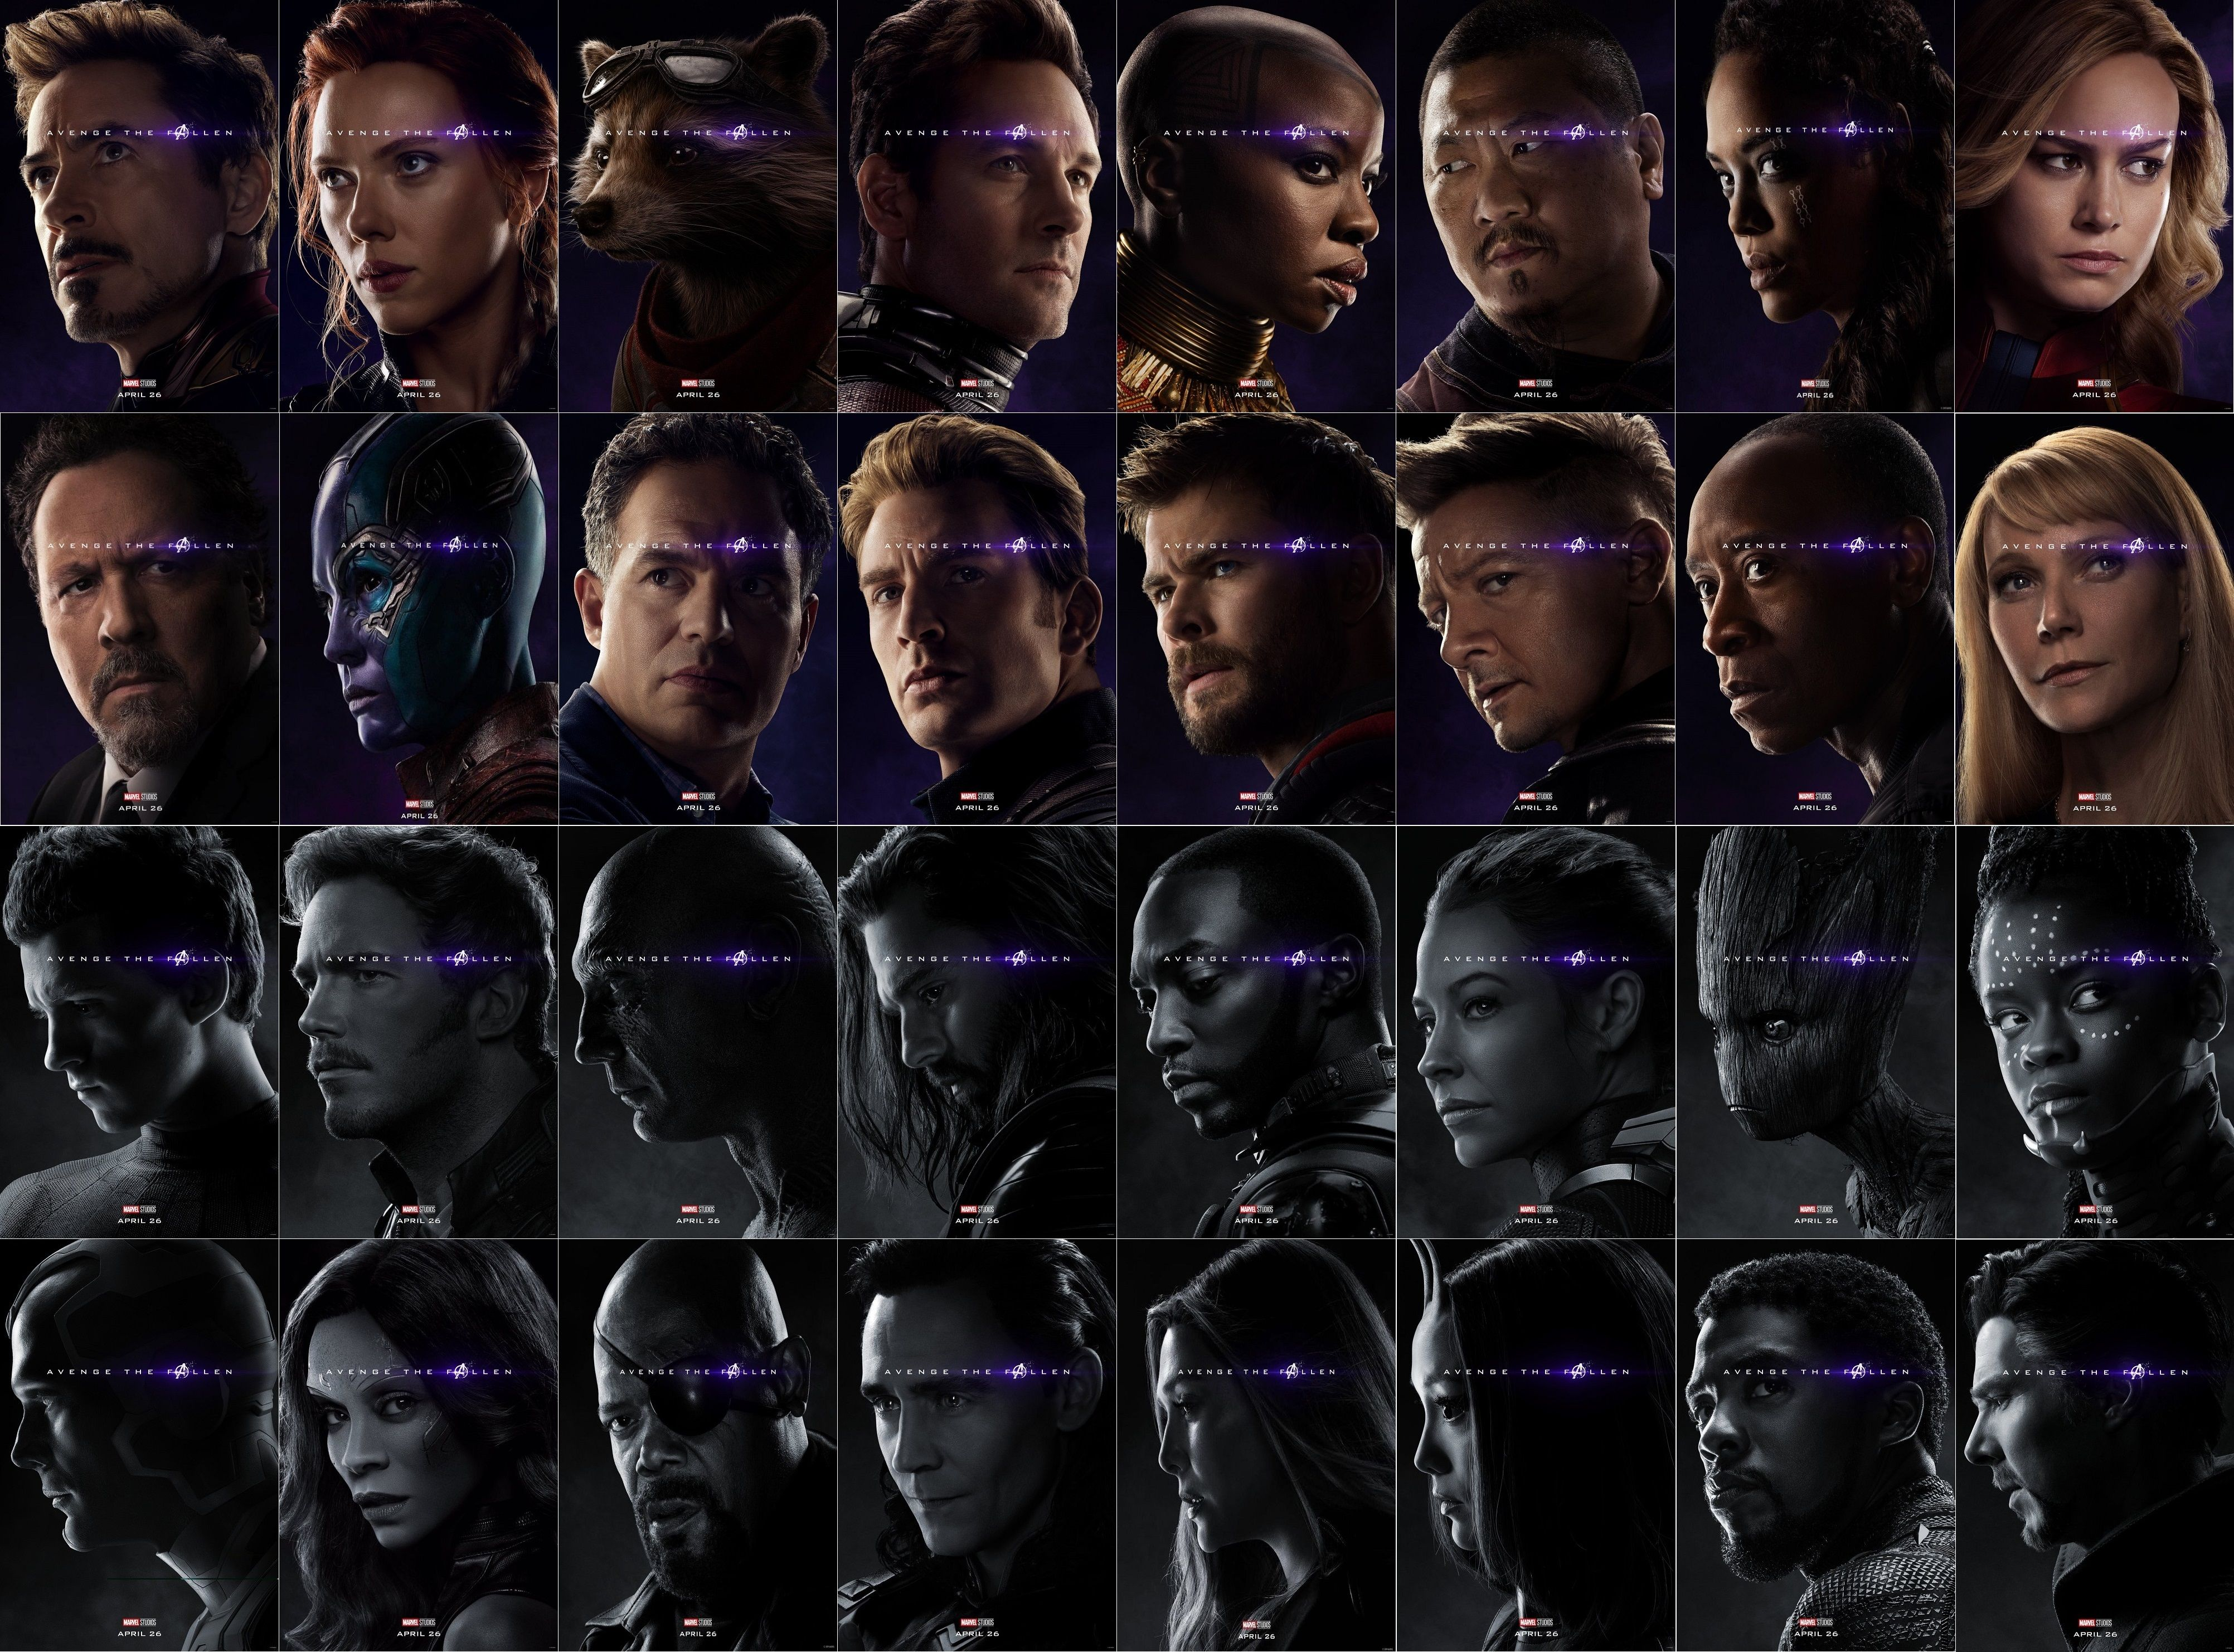 Avengers end game characters poster marvel comics art